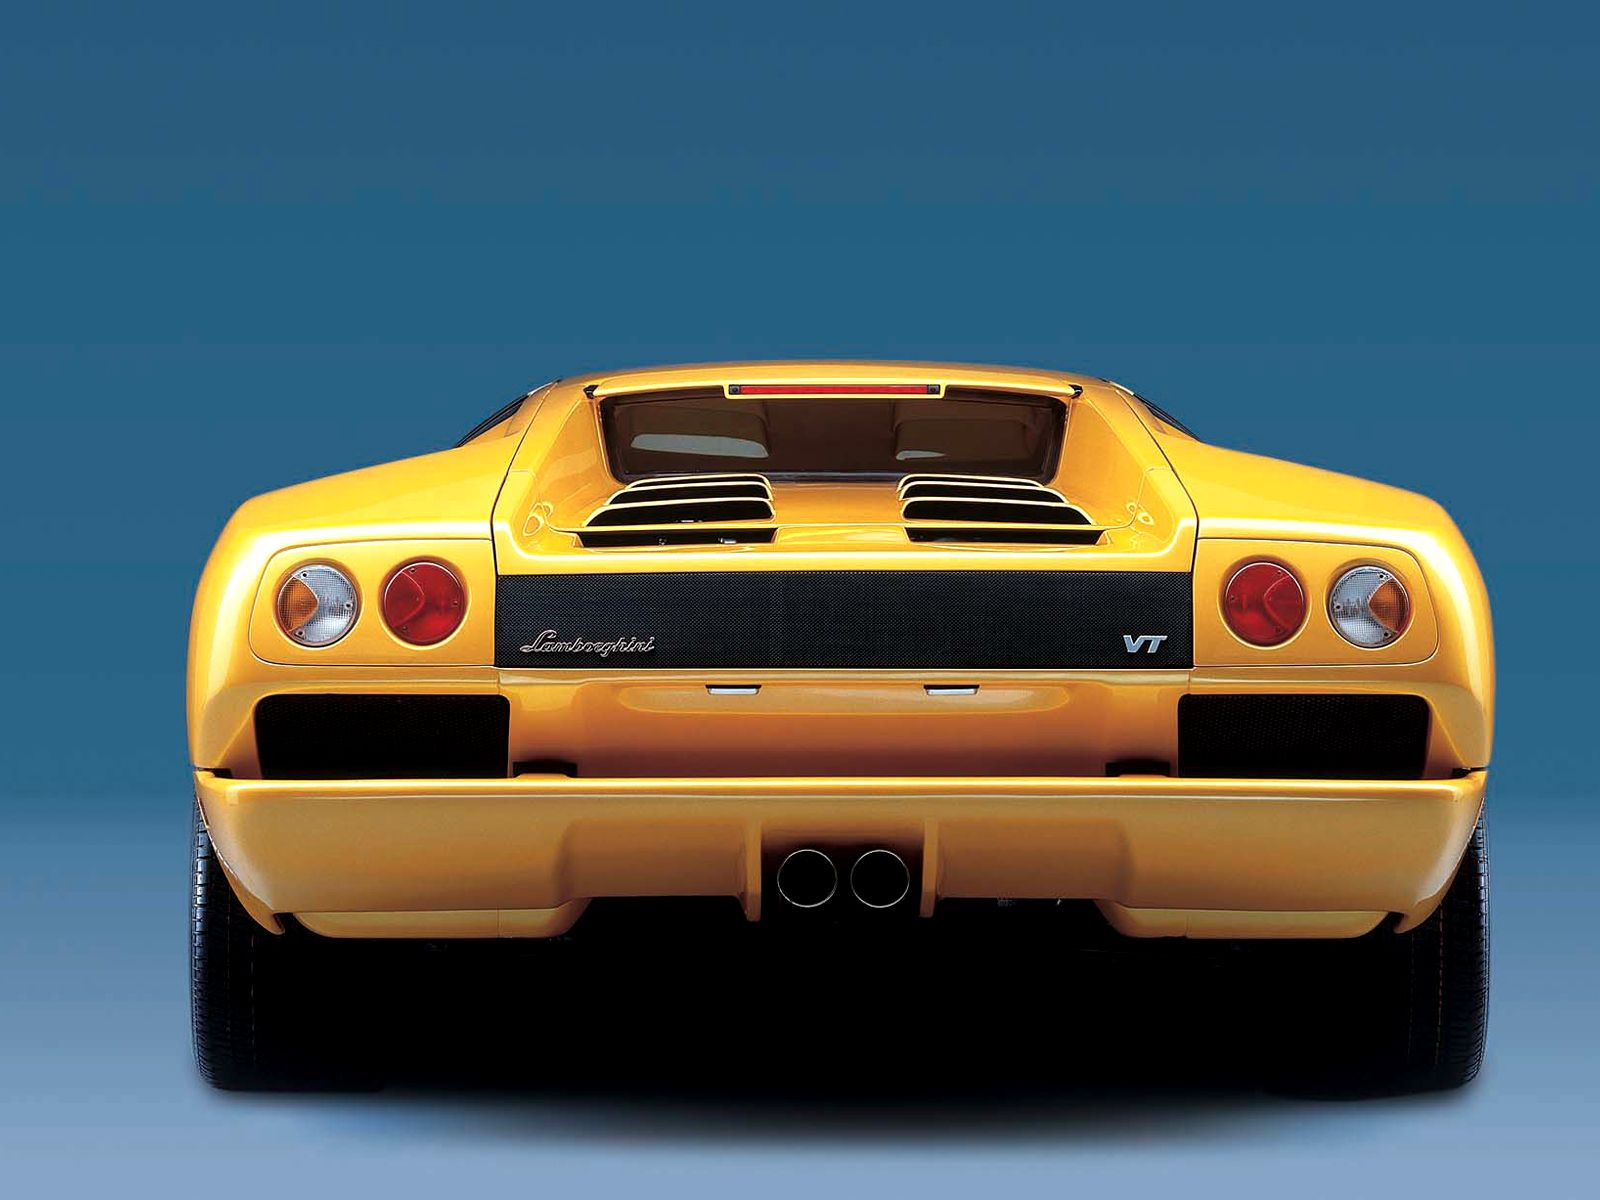 picture of Lamborghini Diablo, 1996